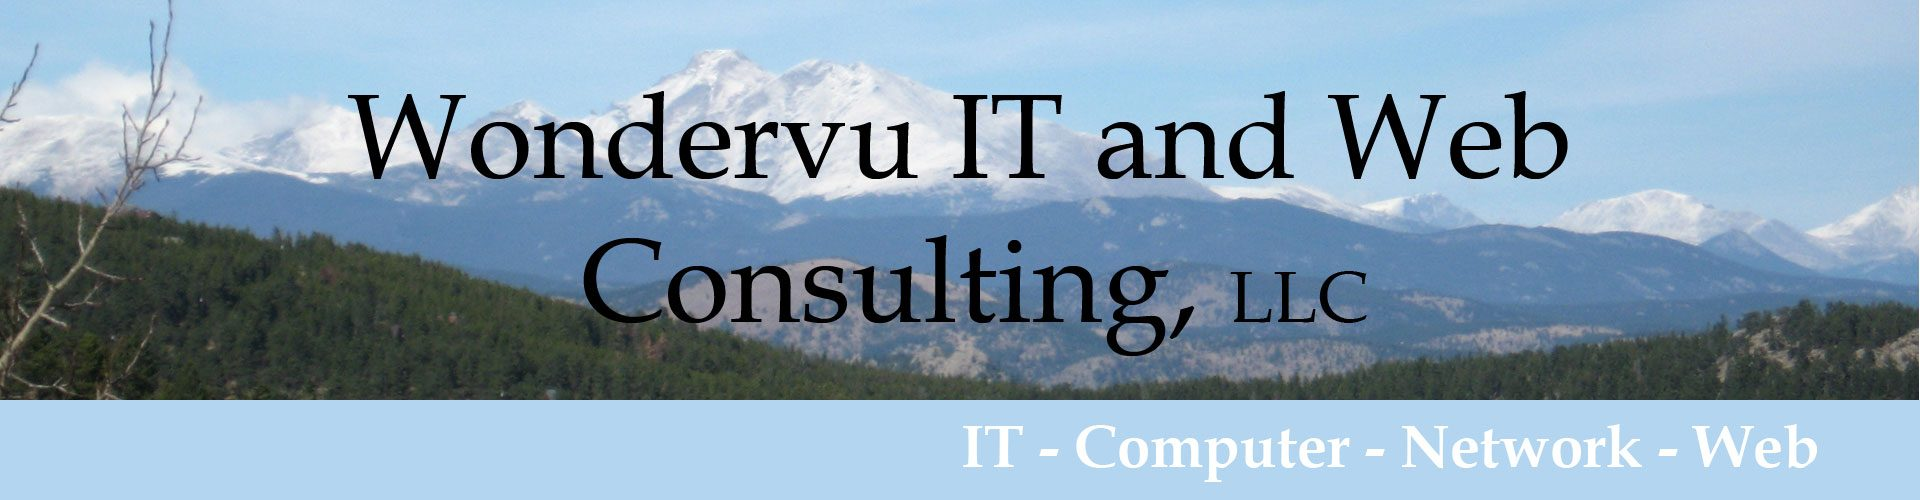 Wondervu IT and Web Consulting Services